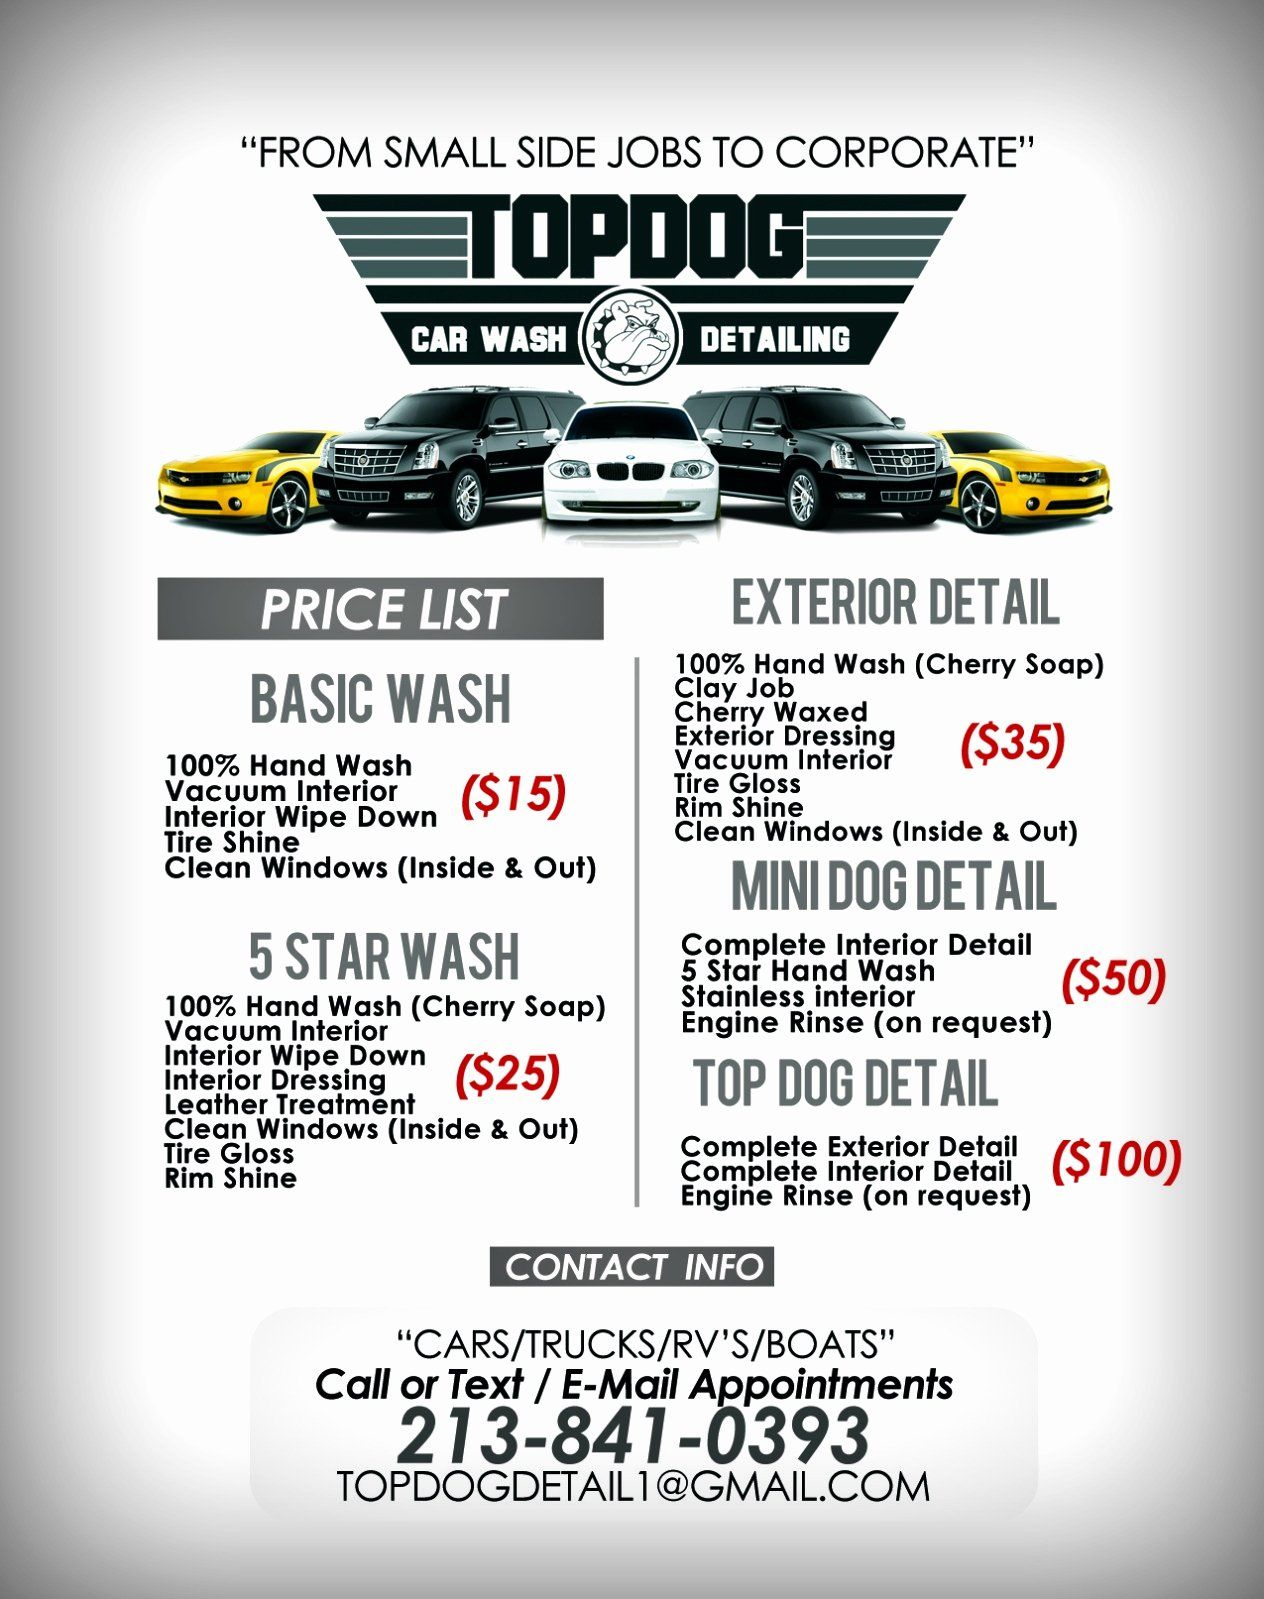 Car Detail Flyer Template Free Luxury Templates Car Detailing Price List Template Flyer Flyer Template Flyer Design Templates